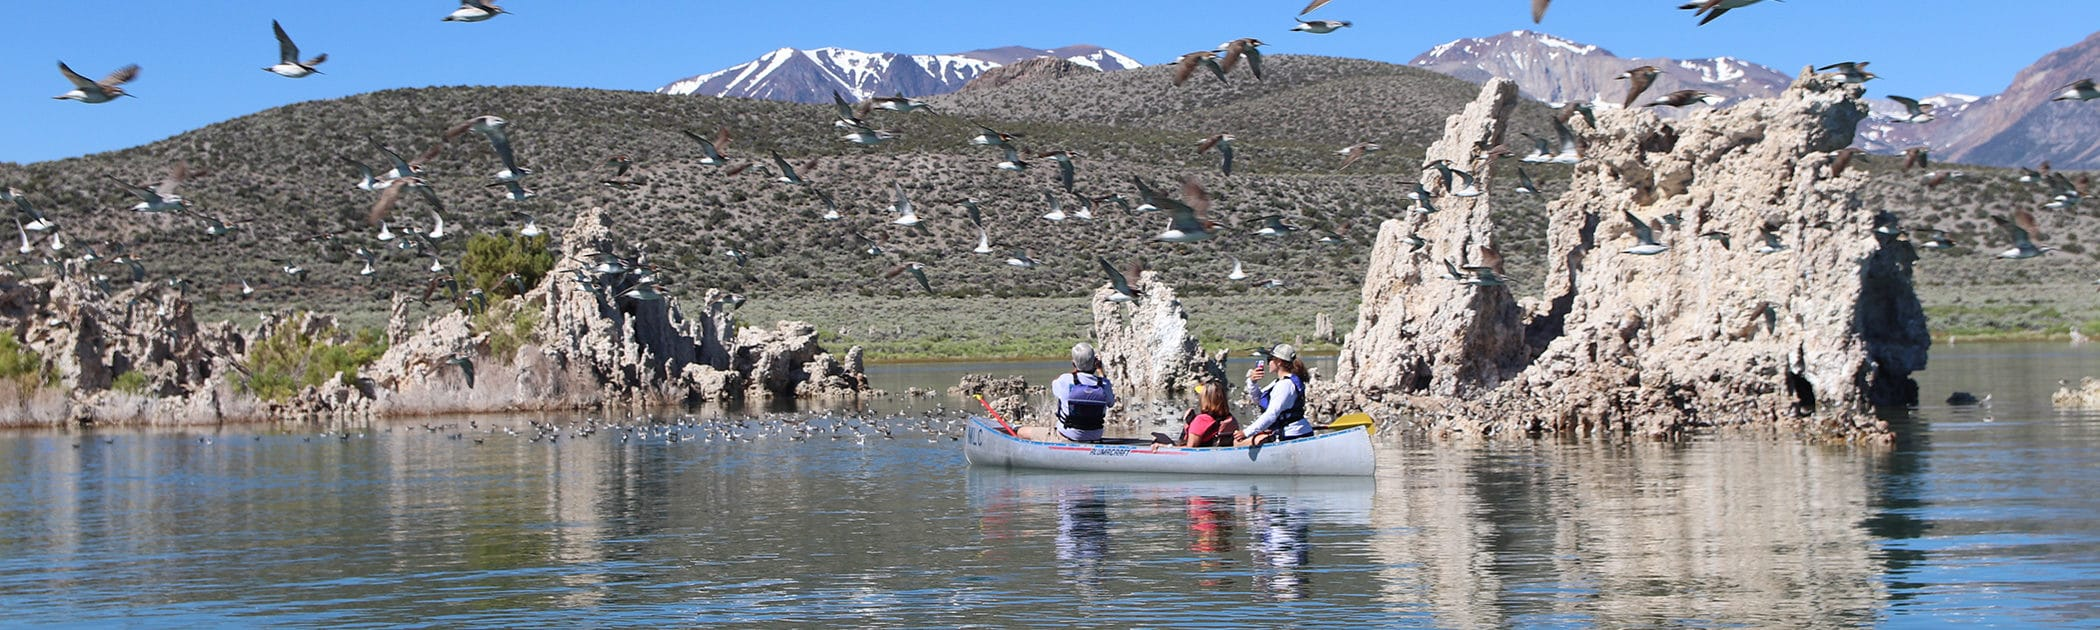 Three people are sitting in a metal canoe on Mono Lake in front of some tufa towers sticking up out of the water and the canoers are looking at a flock of shorebirds in front of them and also flying around them and into the foreground of the photo, with snow capped peaks in the background.